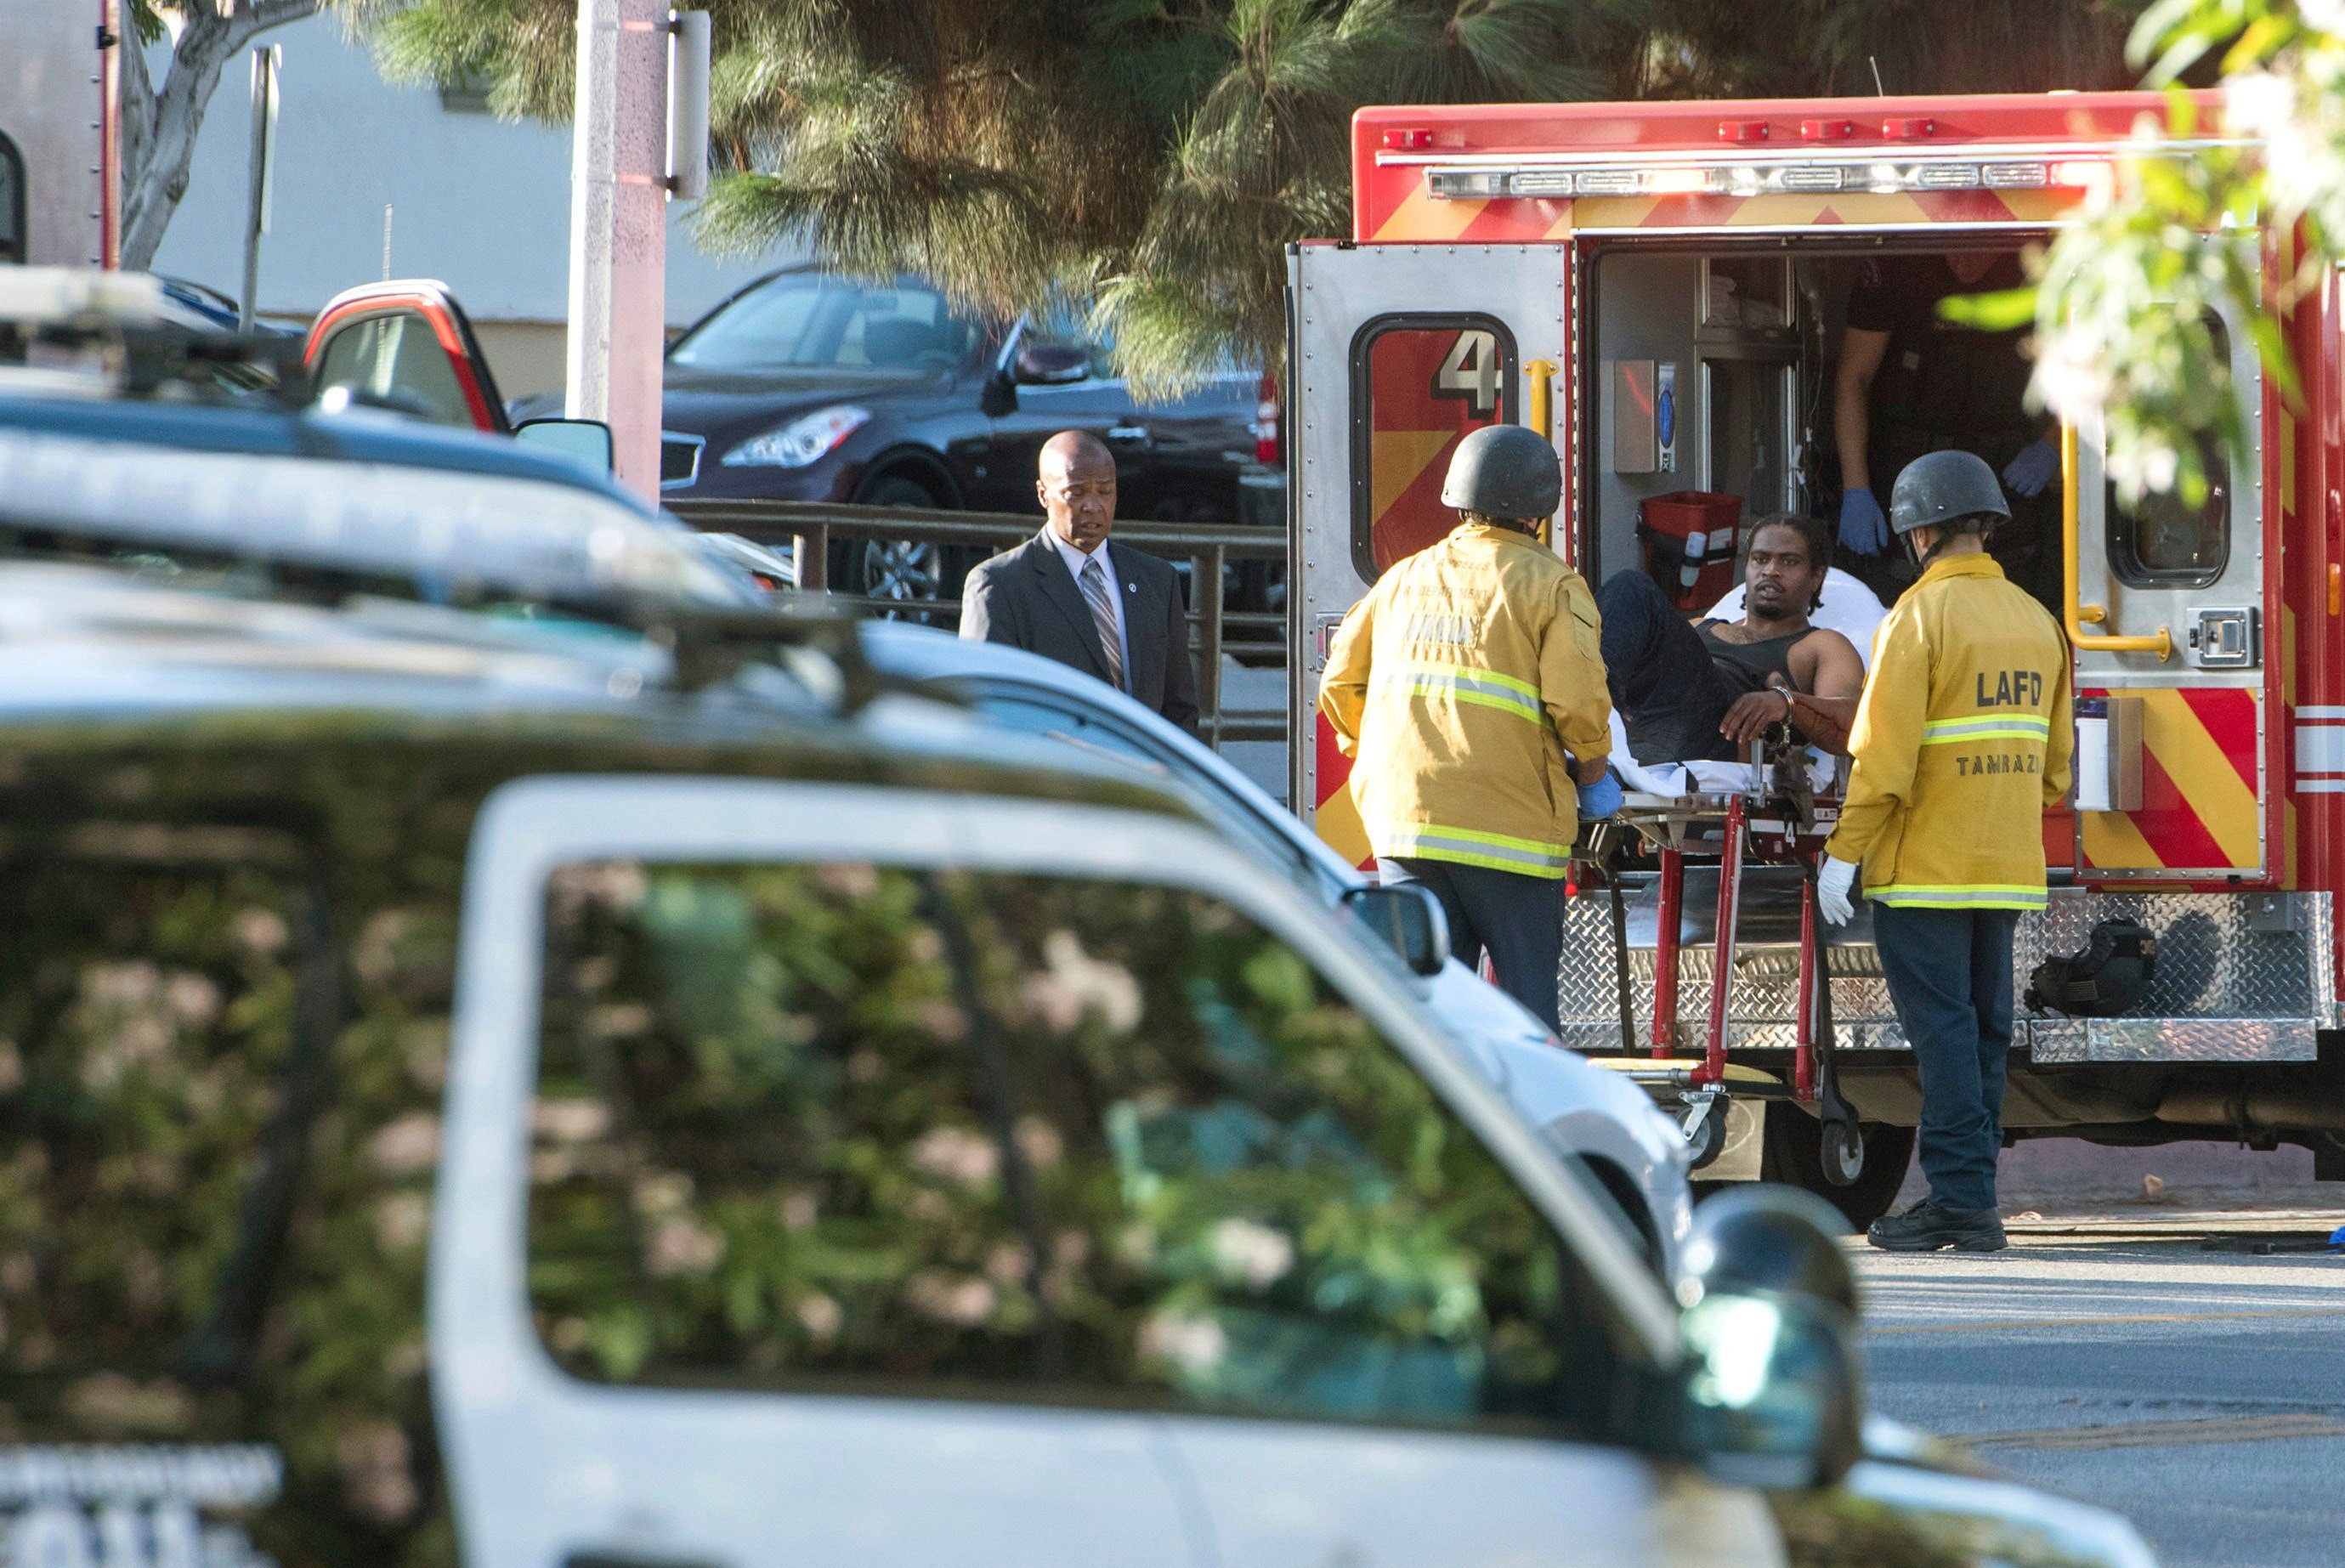 Suspect Takes Hostages at Los Angeles Trader Joes